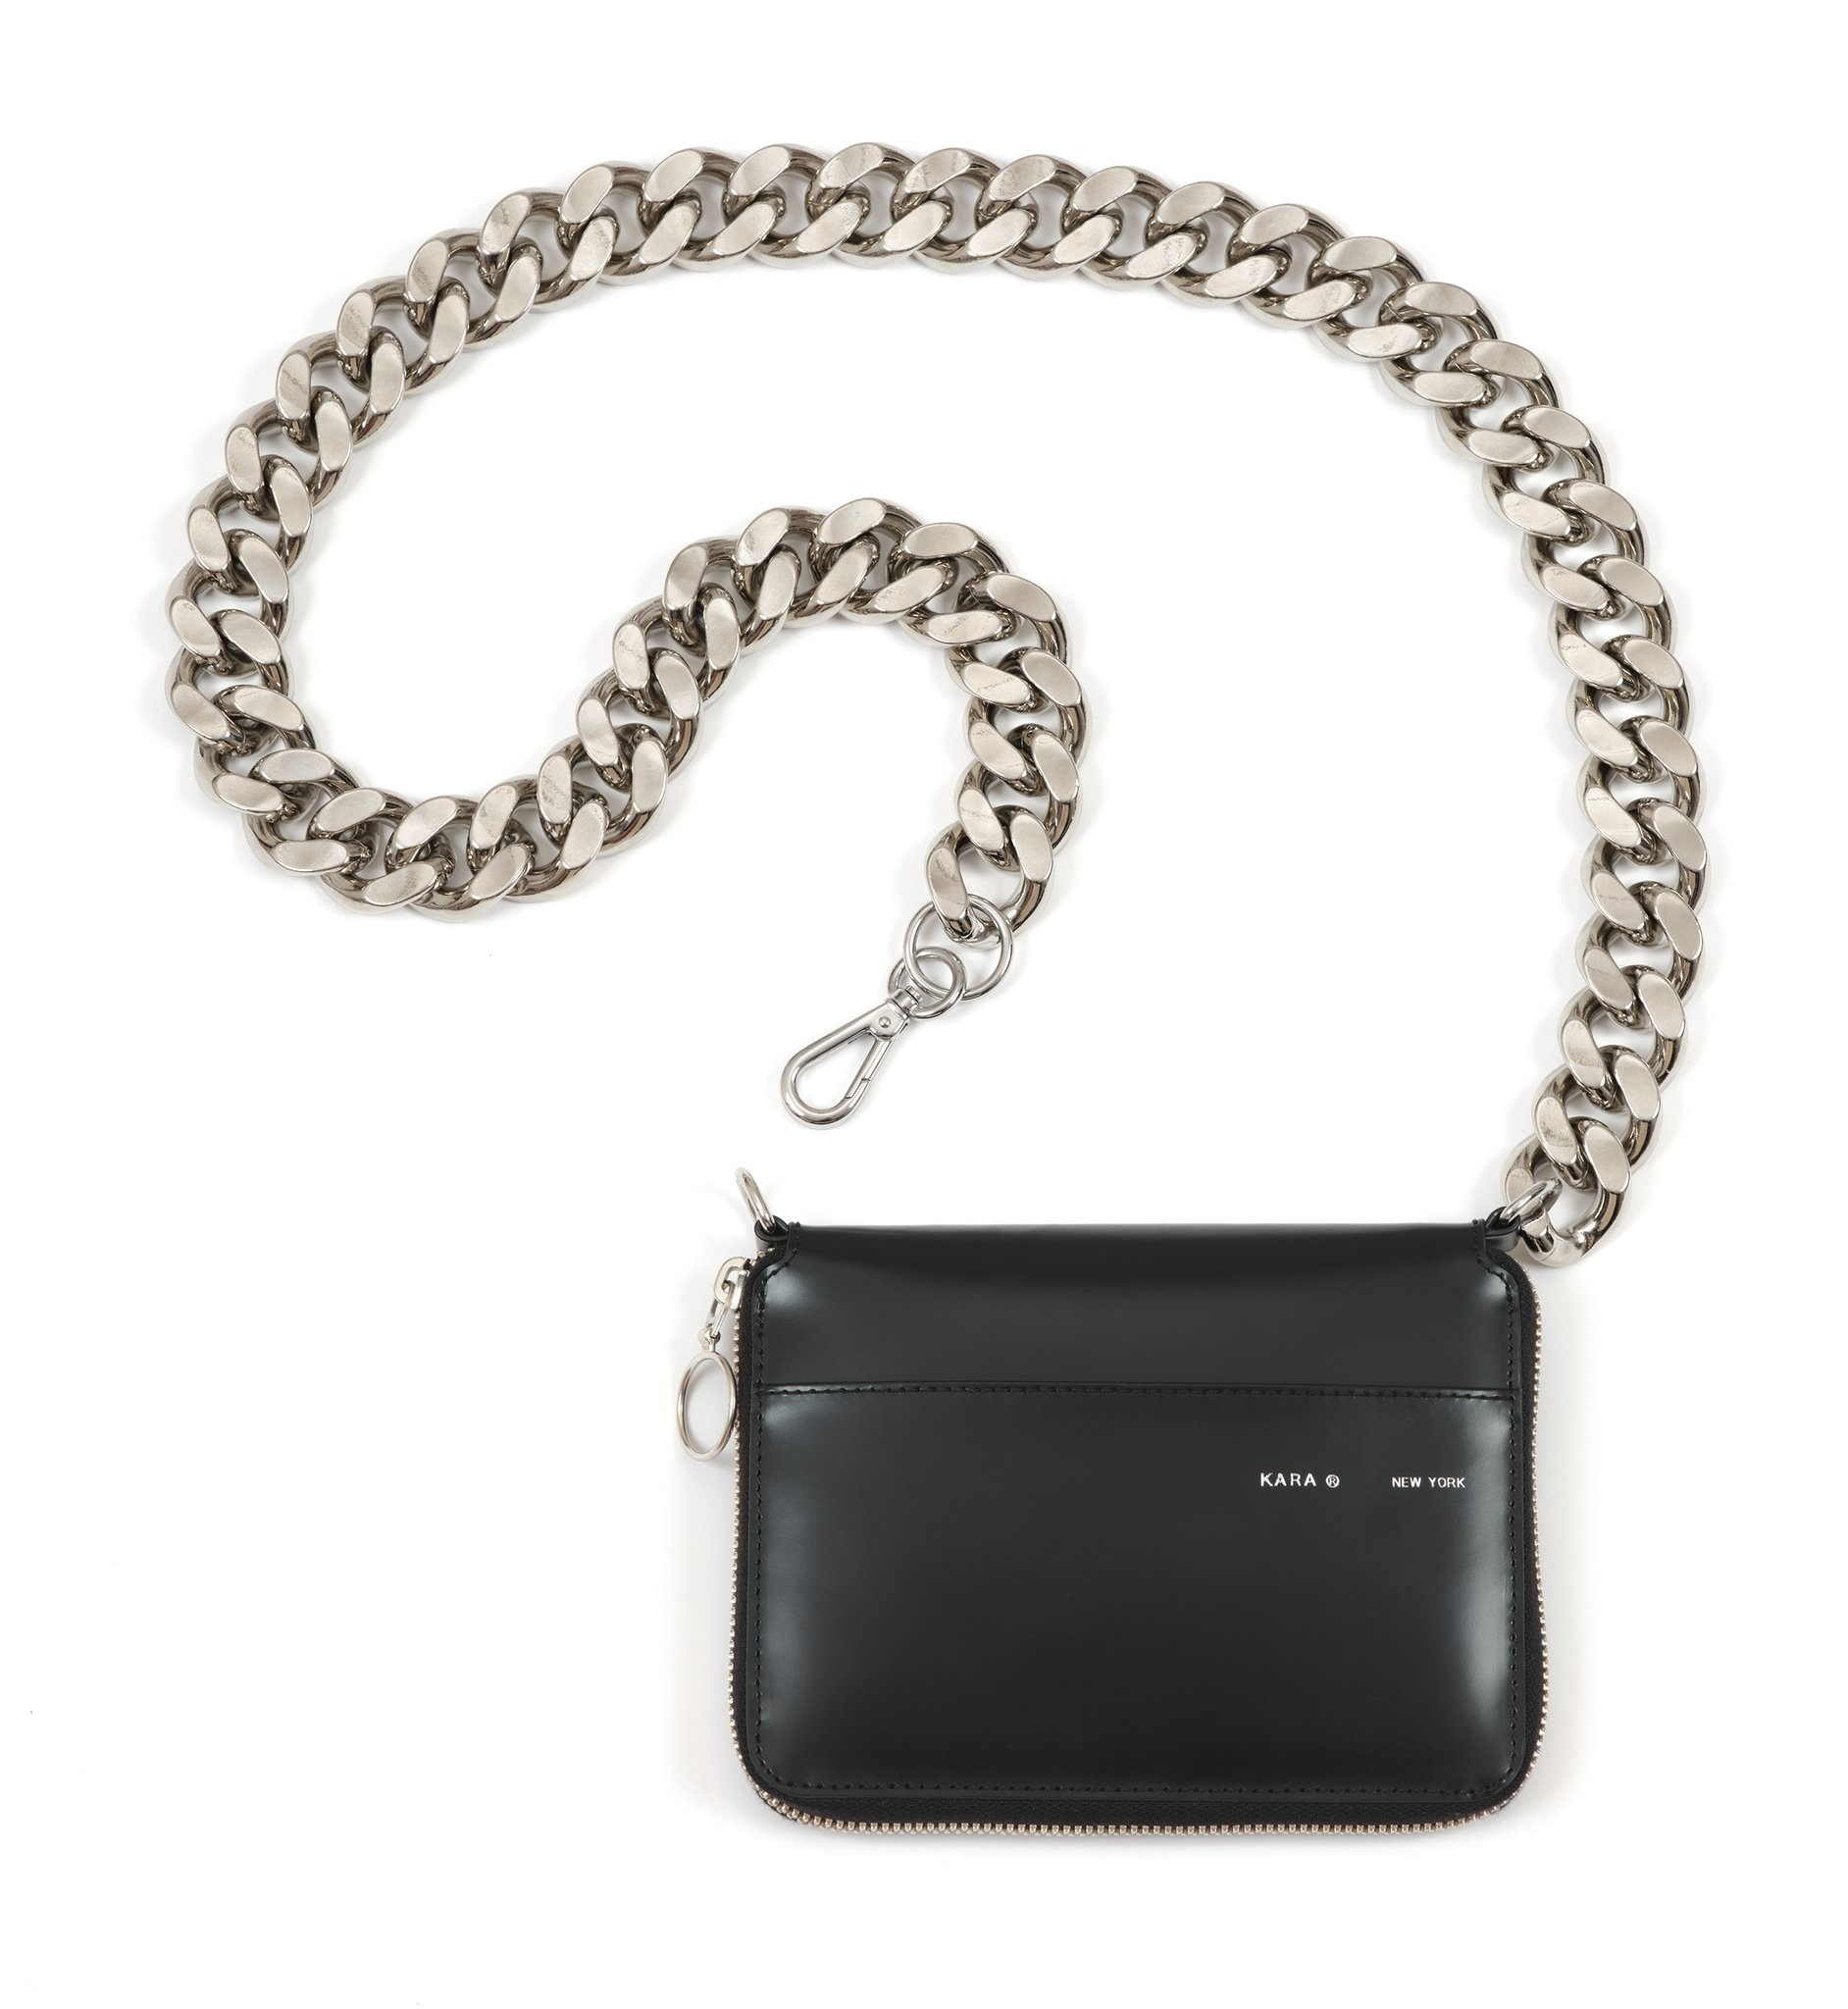 KARA Large Bike Chain Wallet in Black